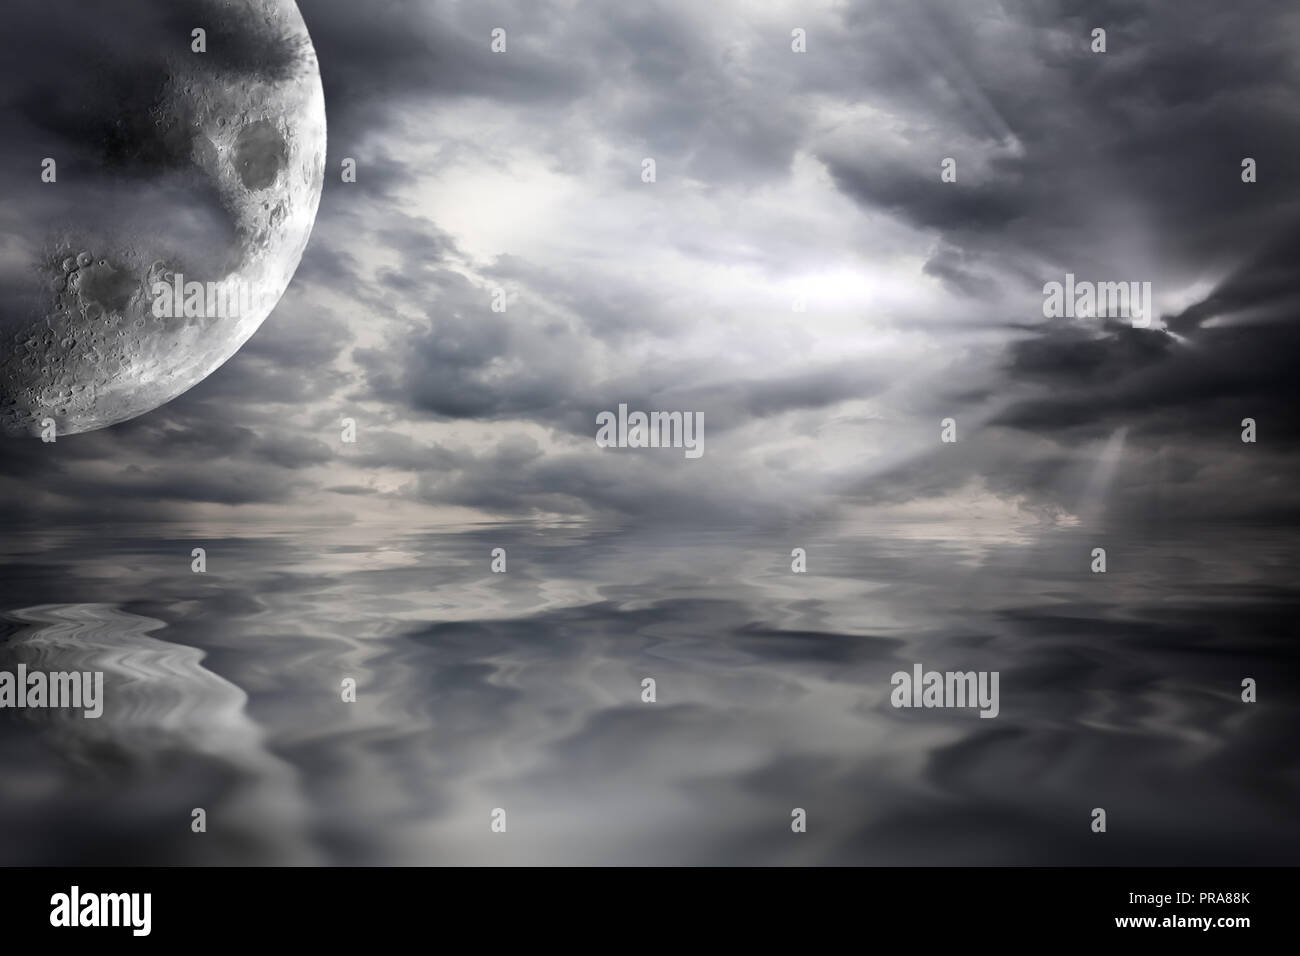 Big moon over water scifi landscape with storm clouds. Black and white fantasy waterscape with reflections of the planet in the sea - Stock Image